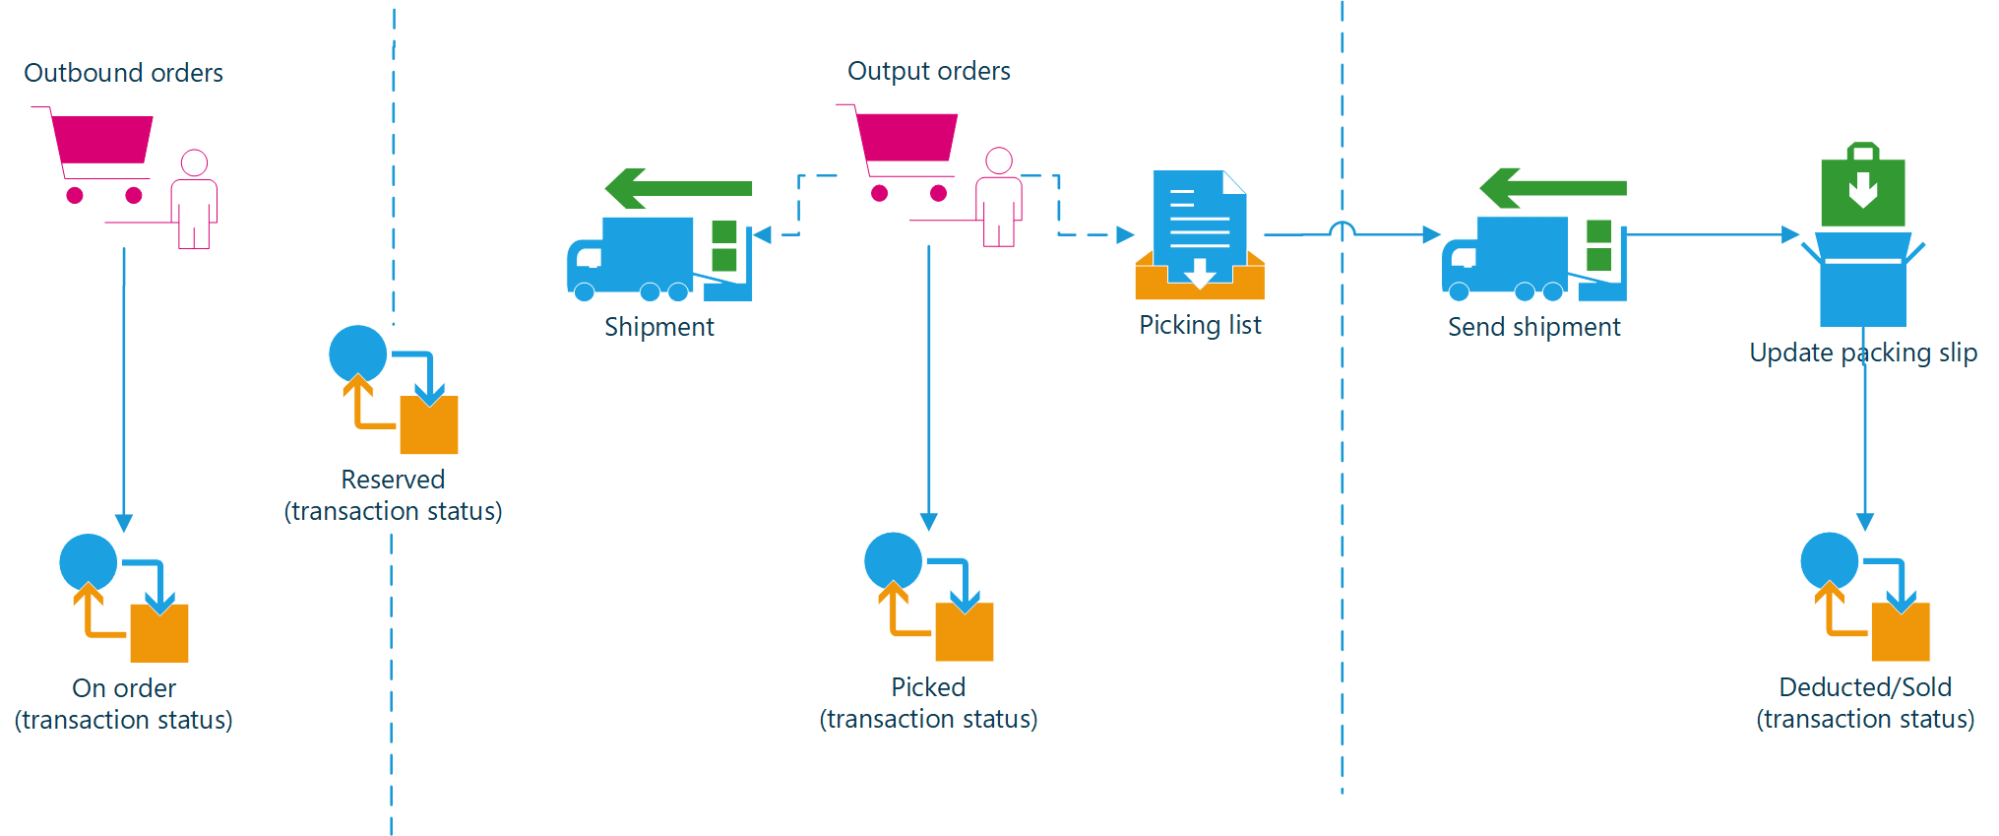 hight resolution of overview of the outbound order process